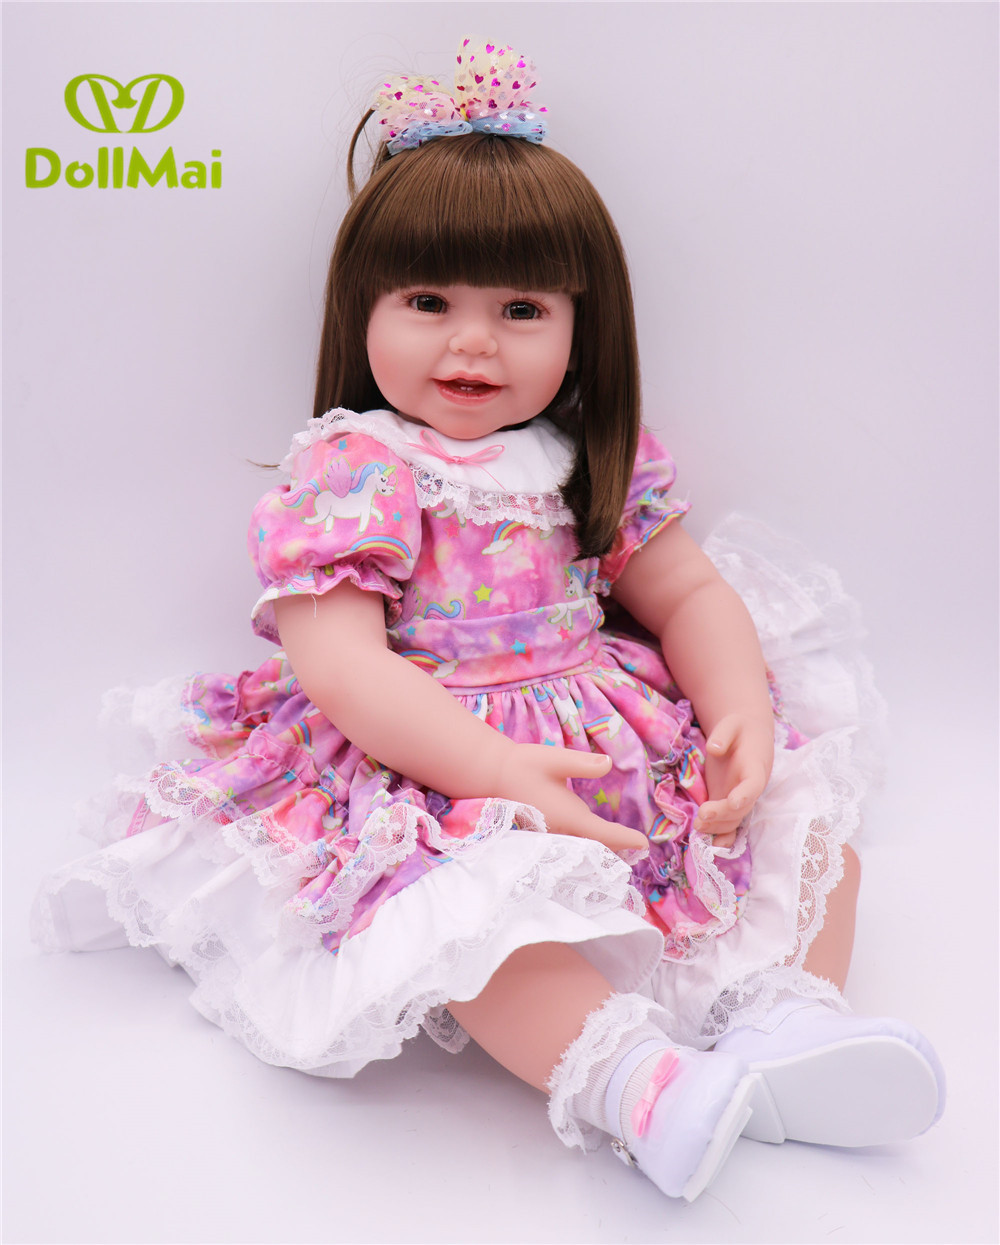 2460cm reborn girl dolls vinyl silicone reborn baby dolls real lovely bebe princess reborn dolls for child gift toys bonecas2460cm reborn girl dolls vinyl silicone reborn baby dolls real lovely bebe princess reborn dolls for child gift toys bonecas